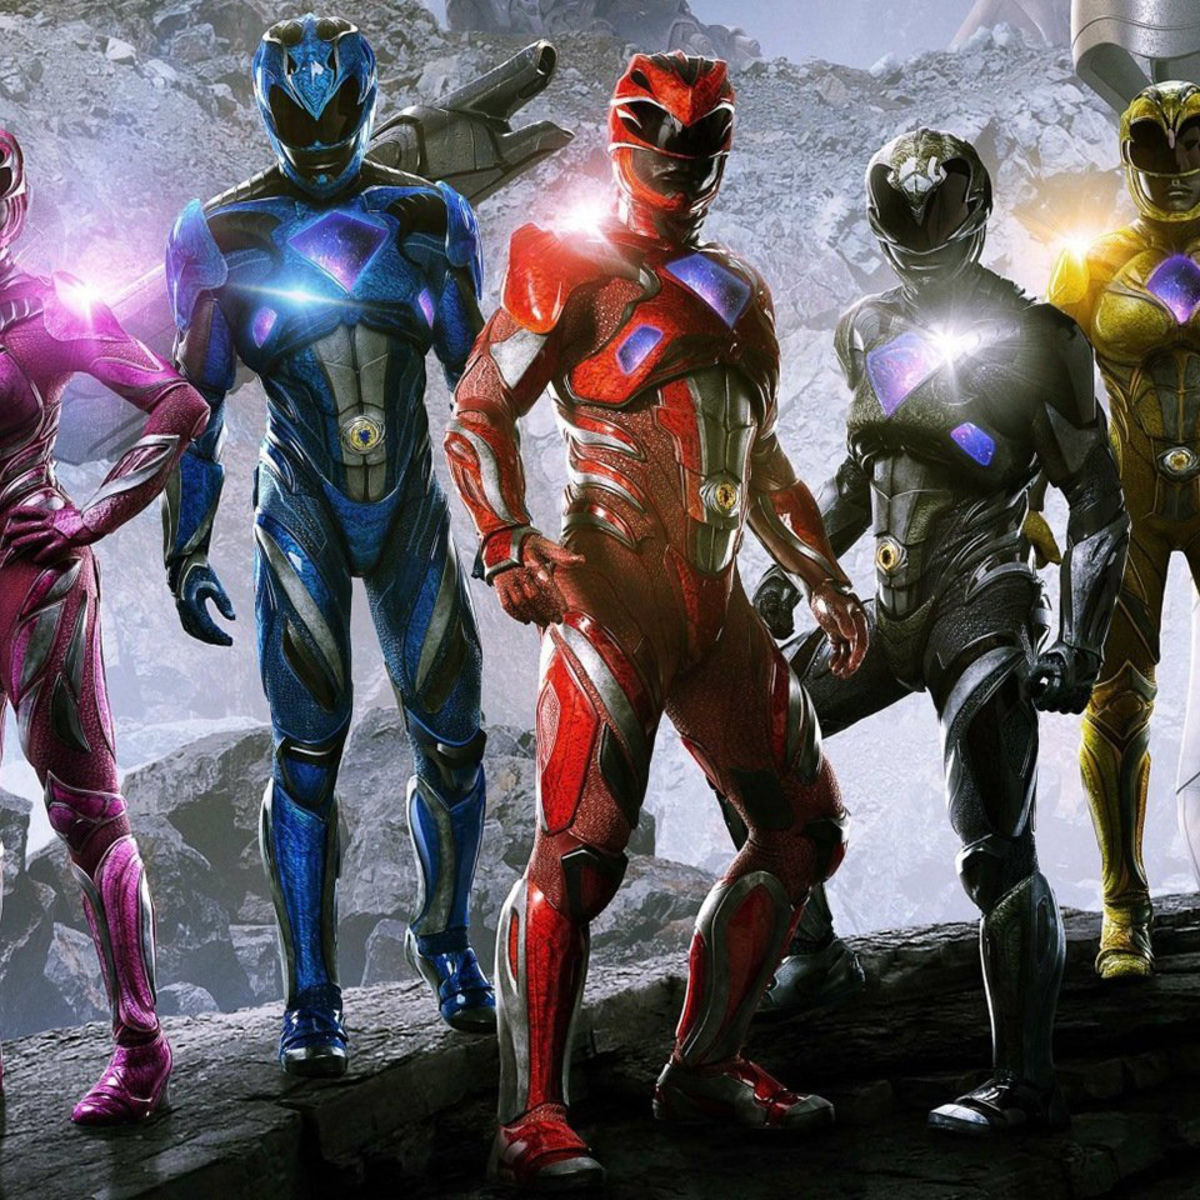 Power-Rangers-2017-Movie-Review.jpg